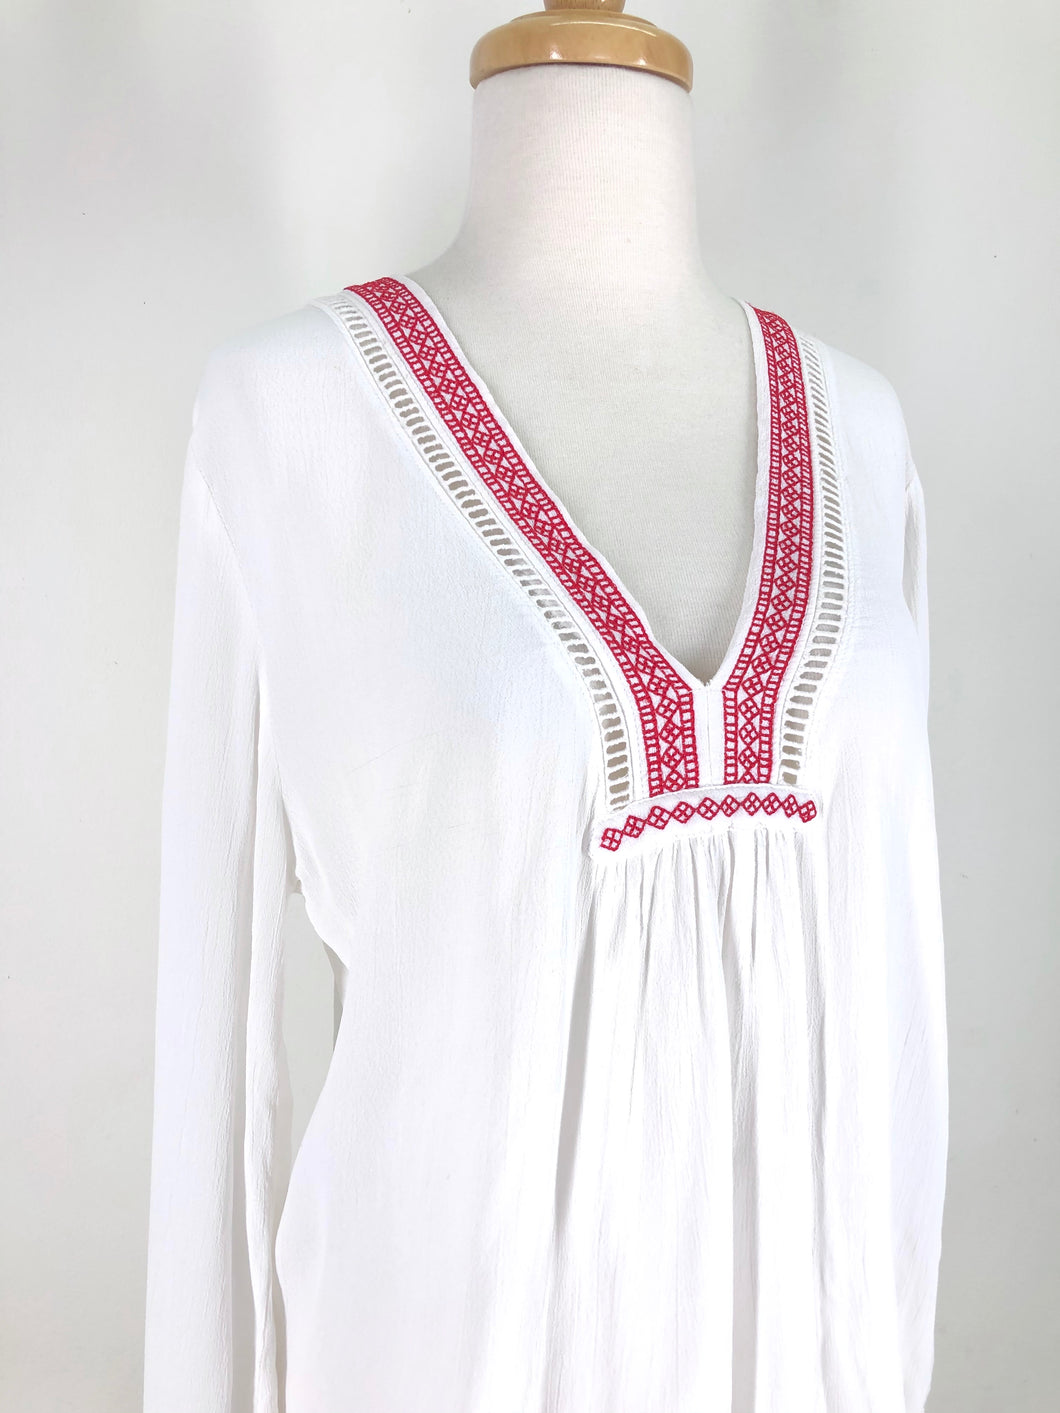 Tigerlily embroidered blouse